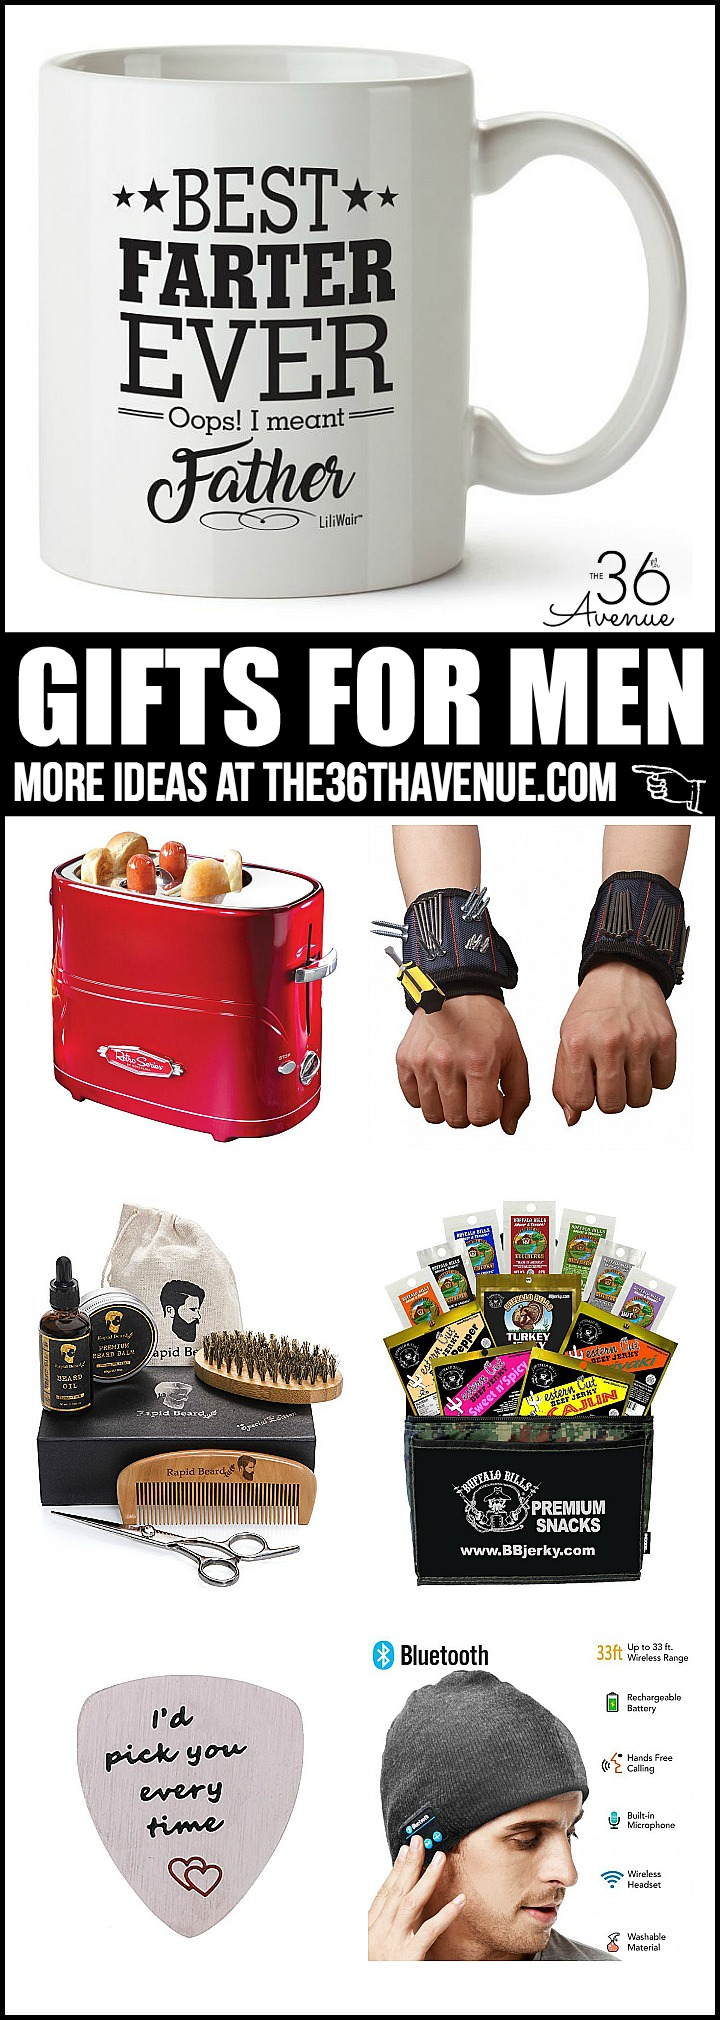 Men Gift Ideas that are fun, affordable, and useful!